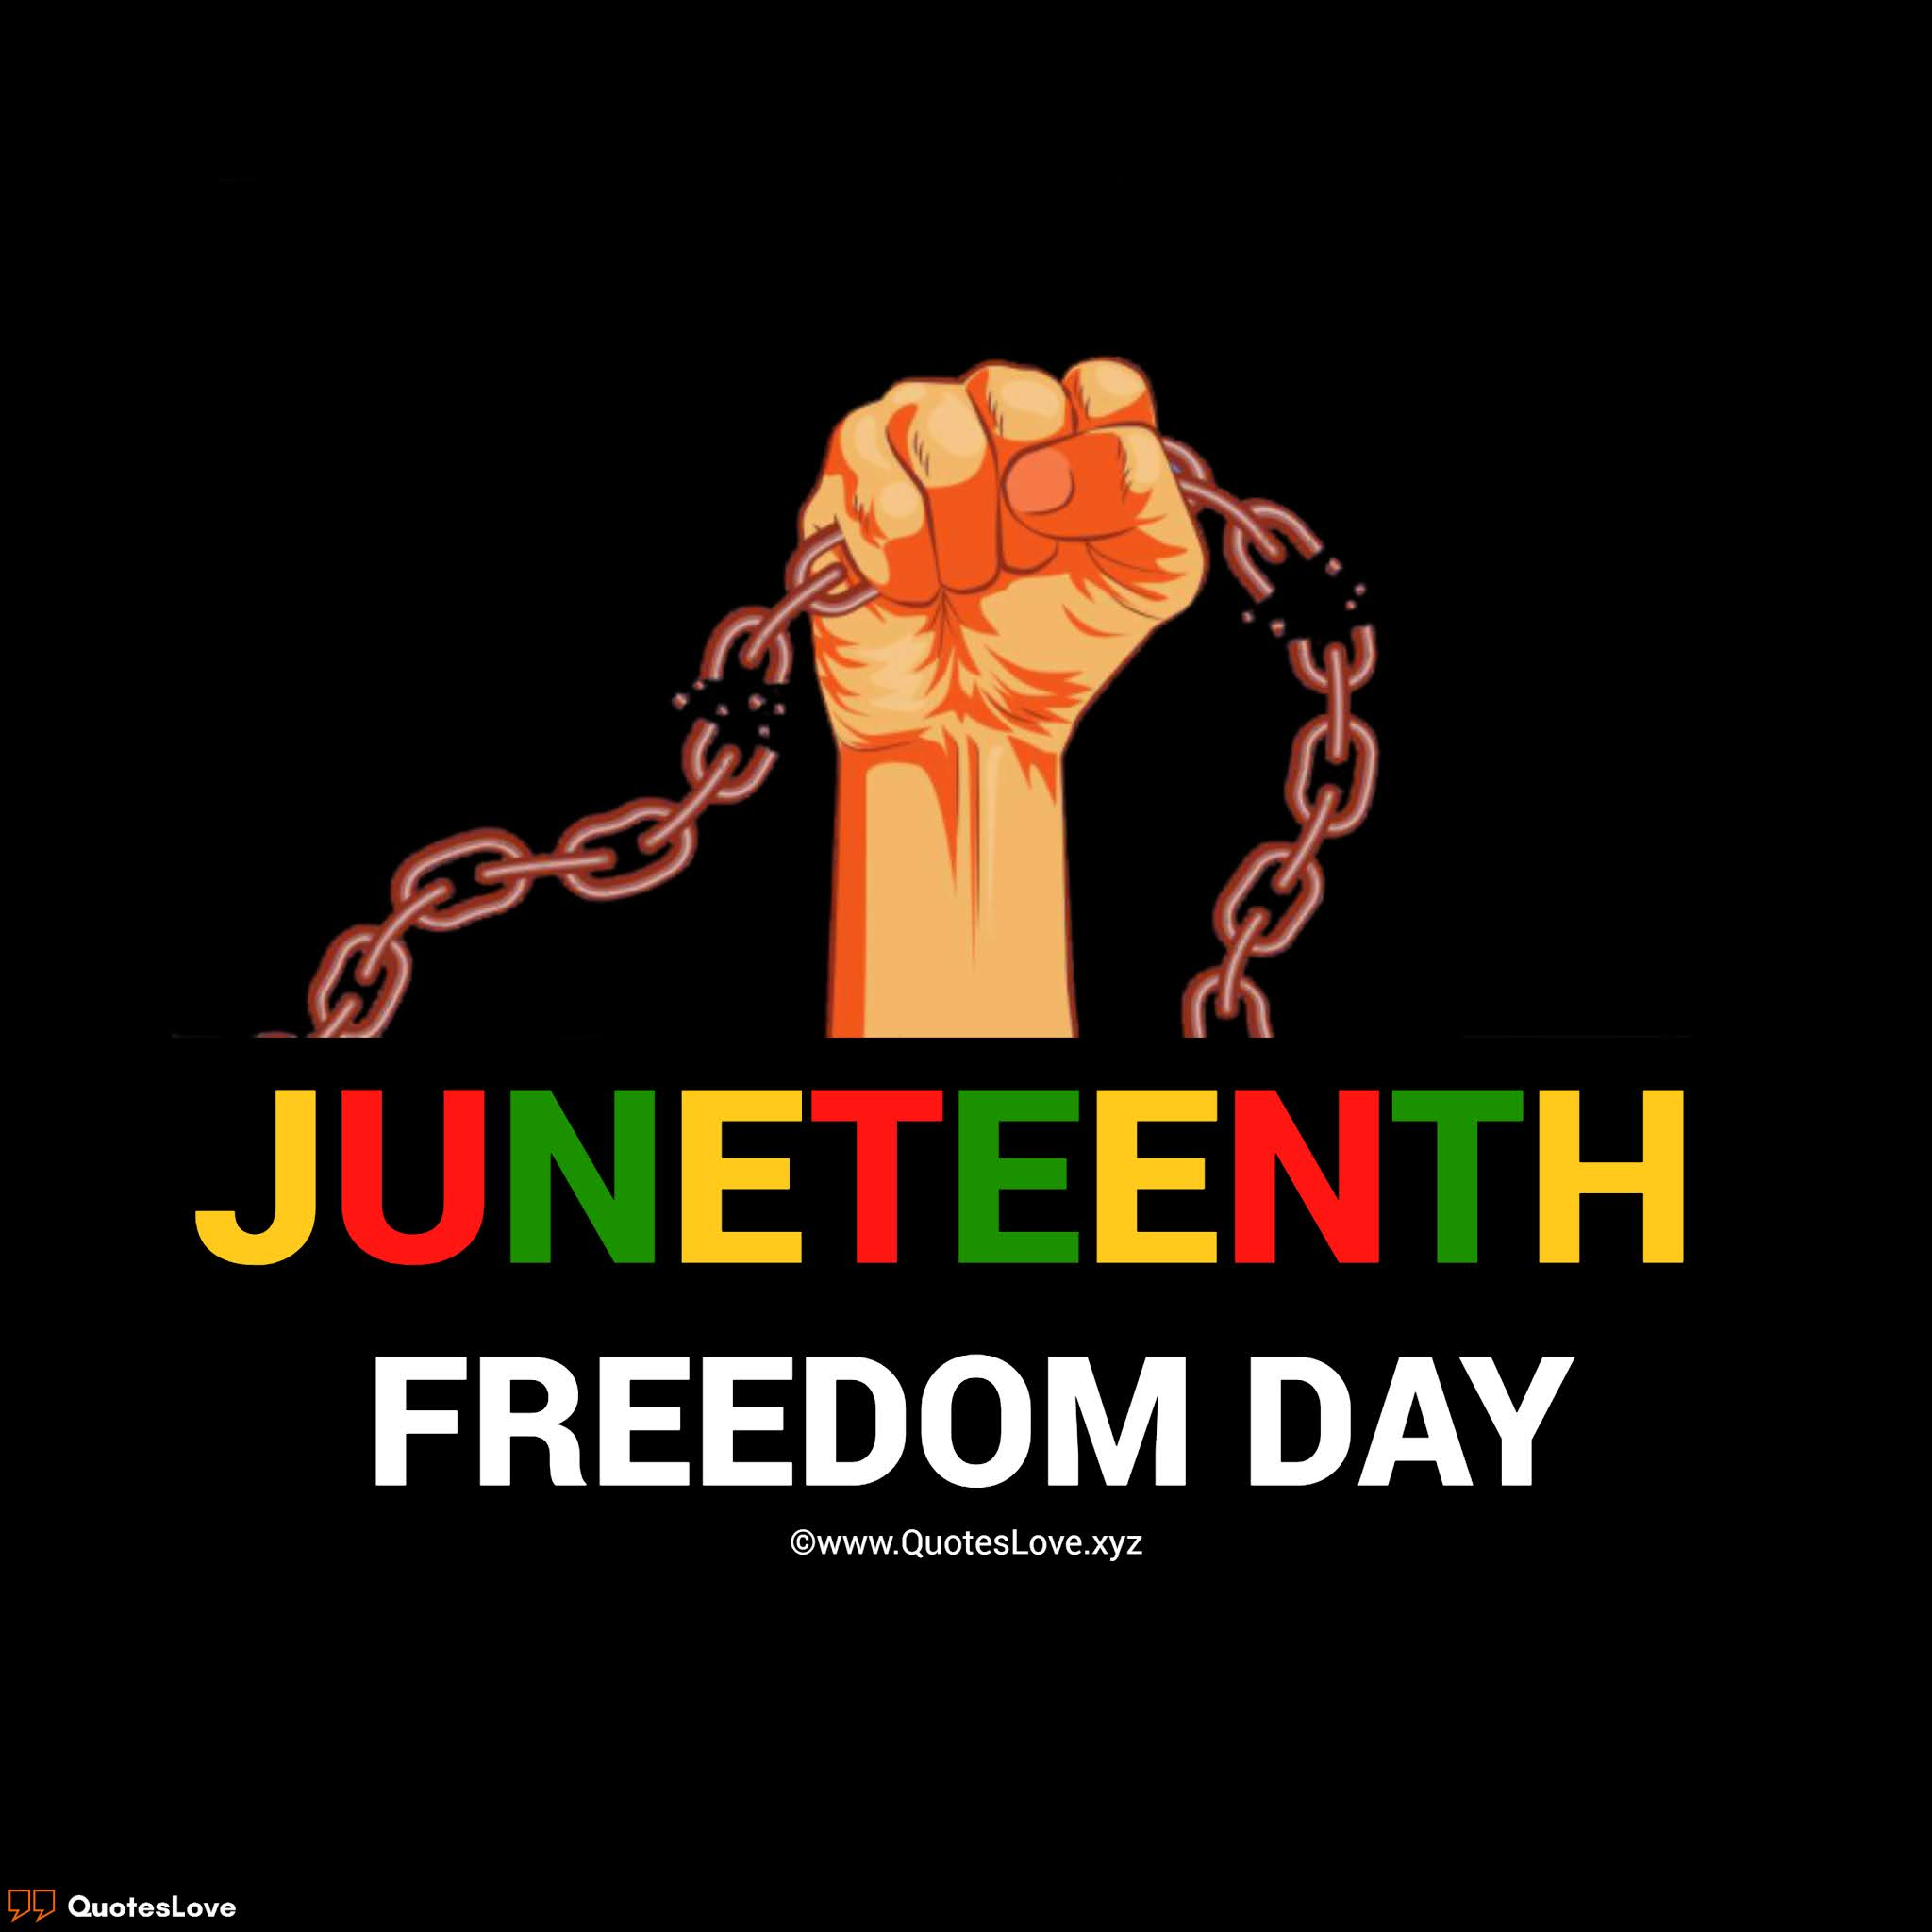 Juneteenth Images, Pictures, Photos, Wallpaper